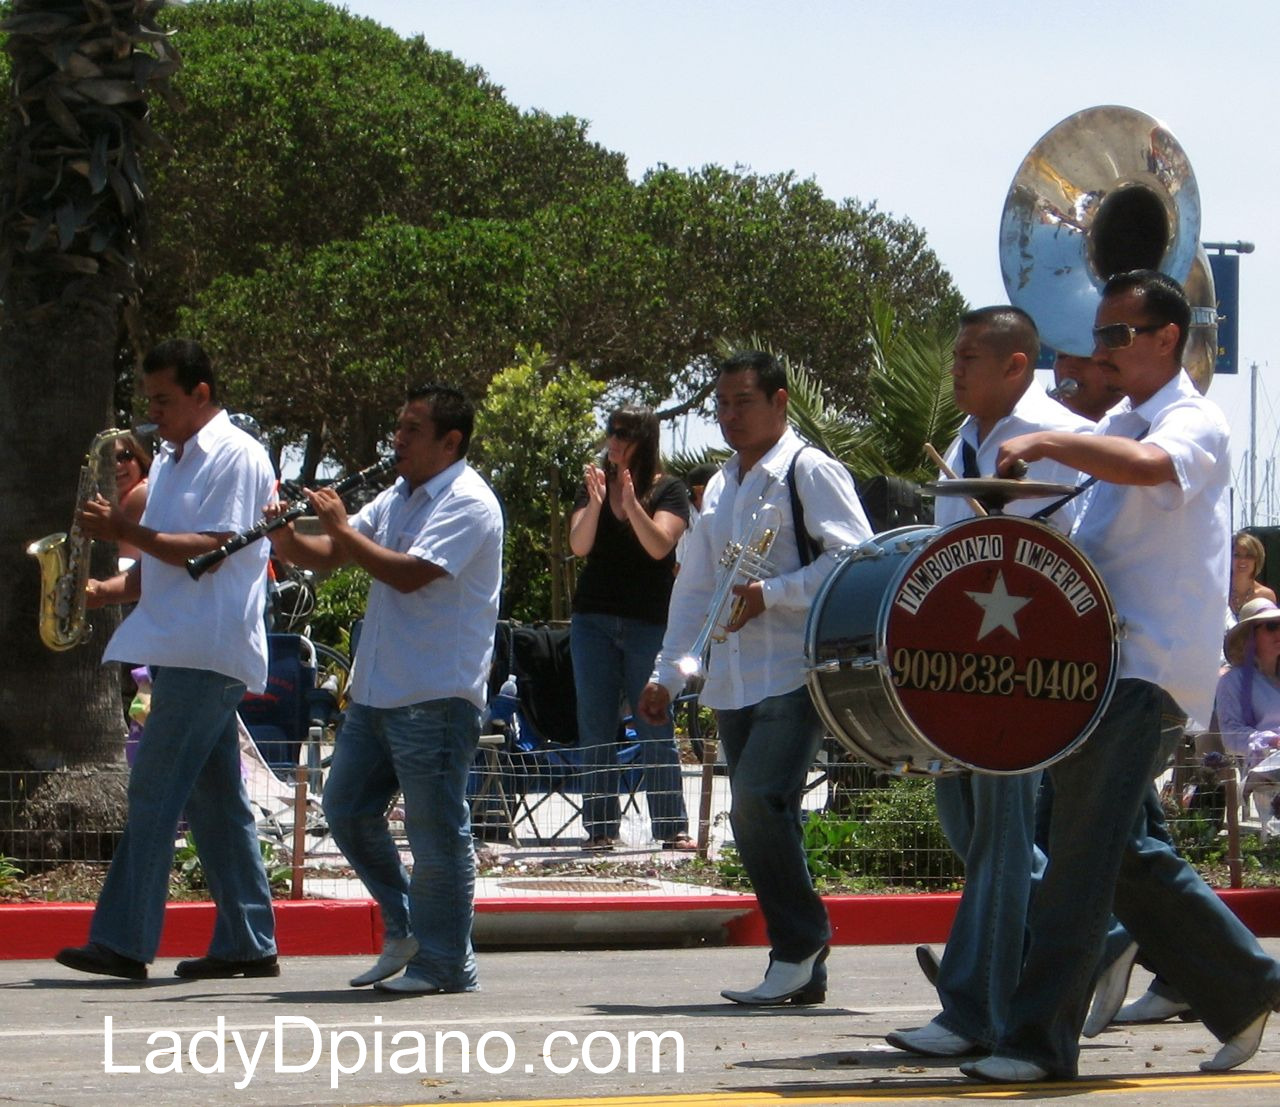 Ladydpiano piano and keyboard salsa i just returned home from vacationing in santa barbara and experiencing fiesta days i must say the mariachi musicians caught my ear to many happy hexwebz Choice Image